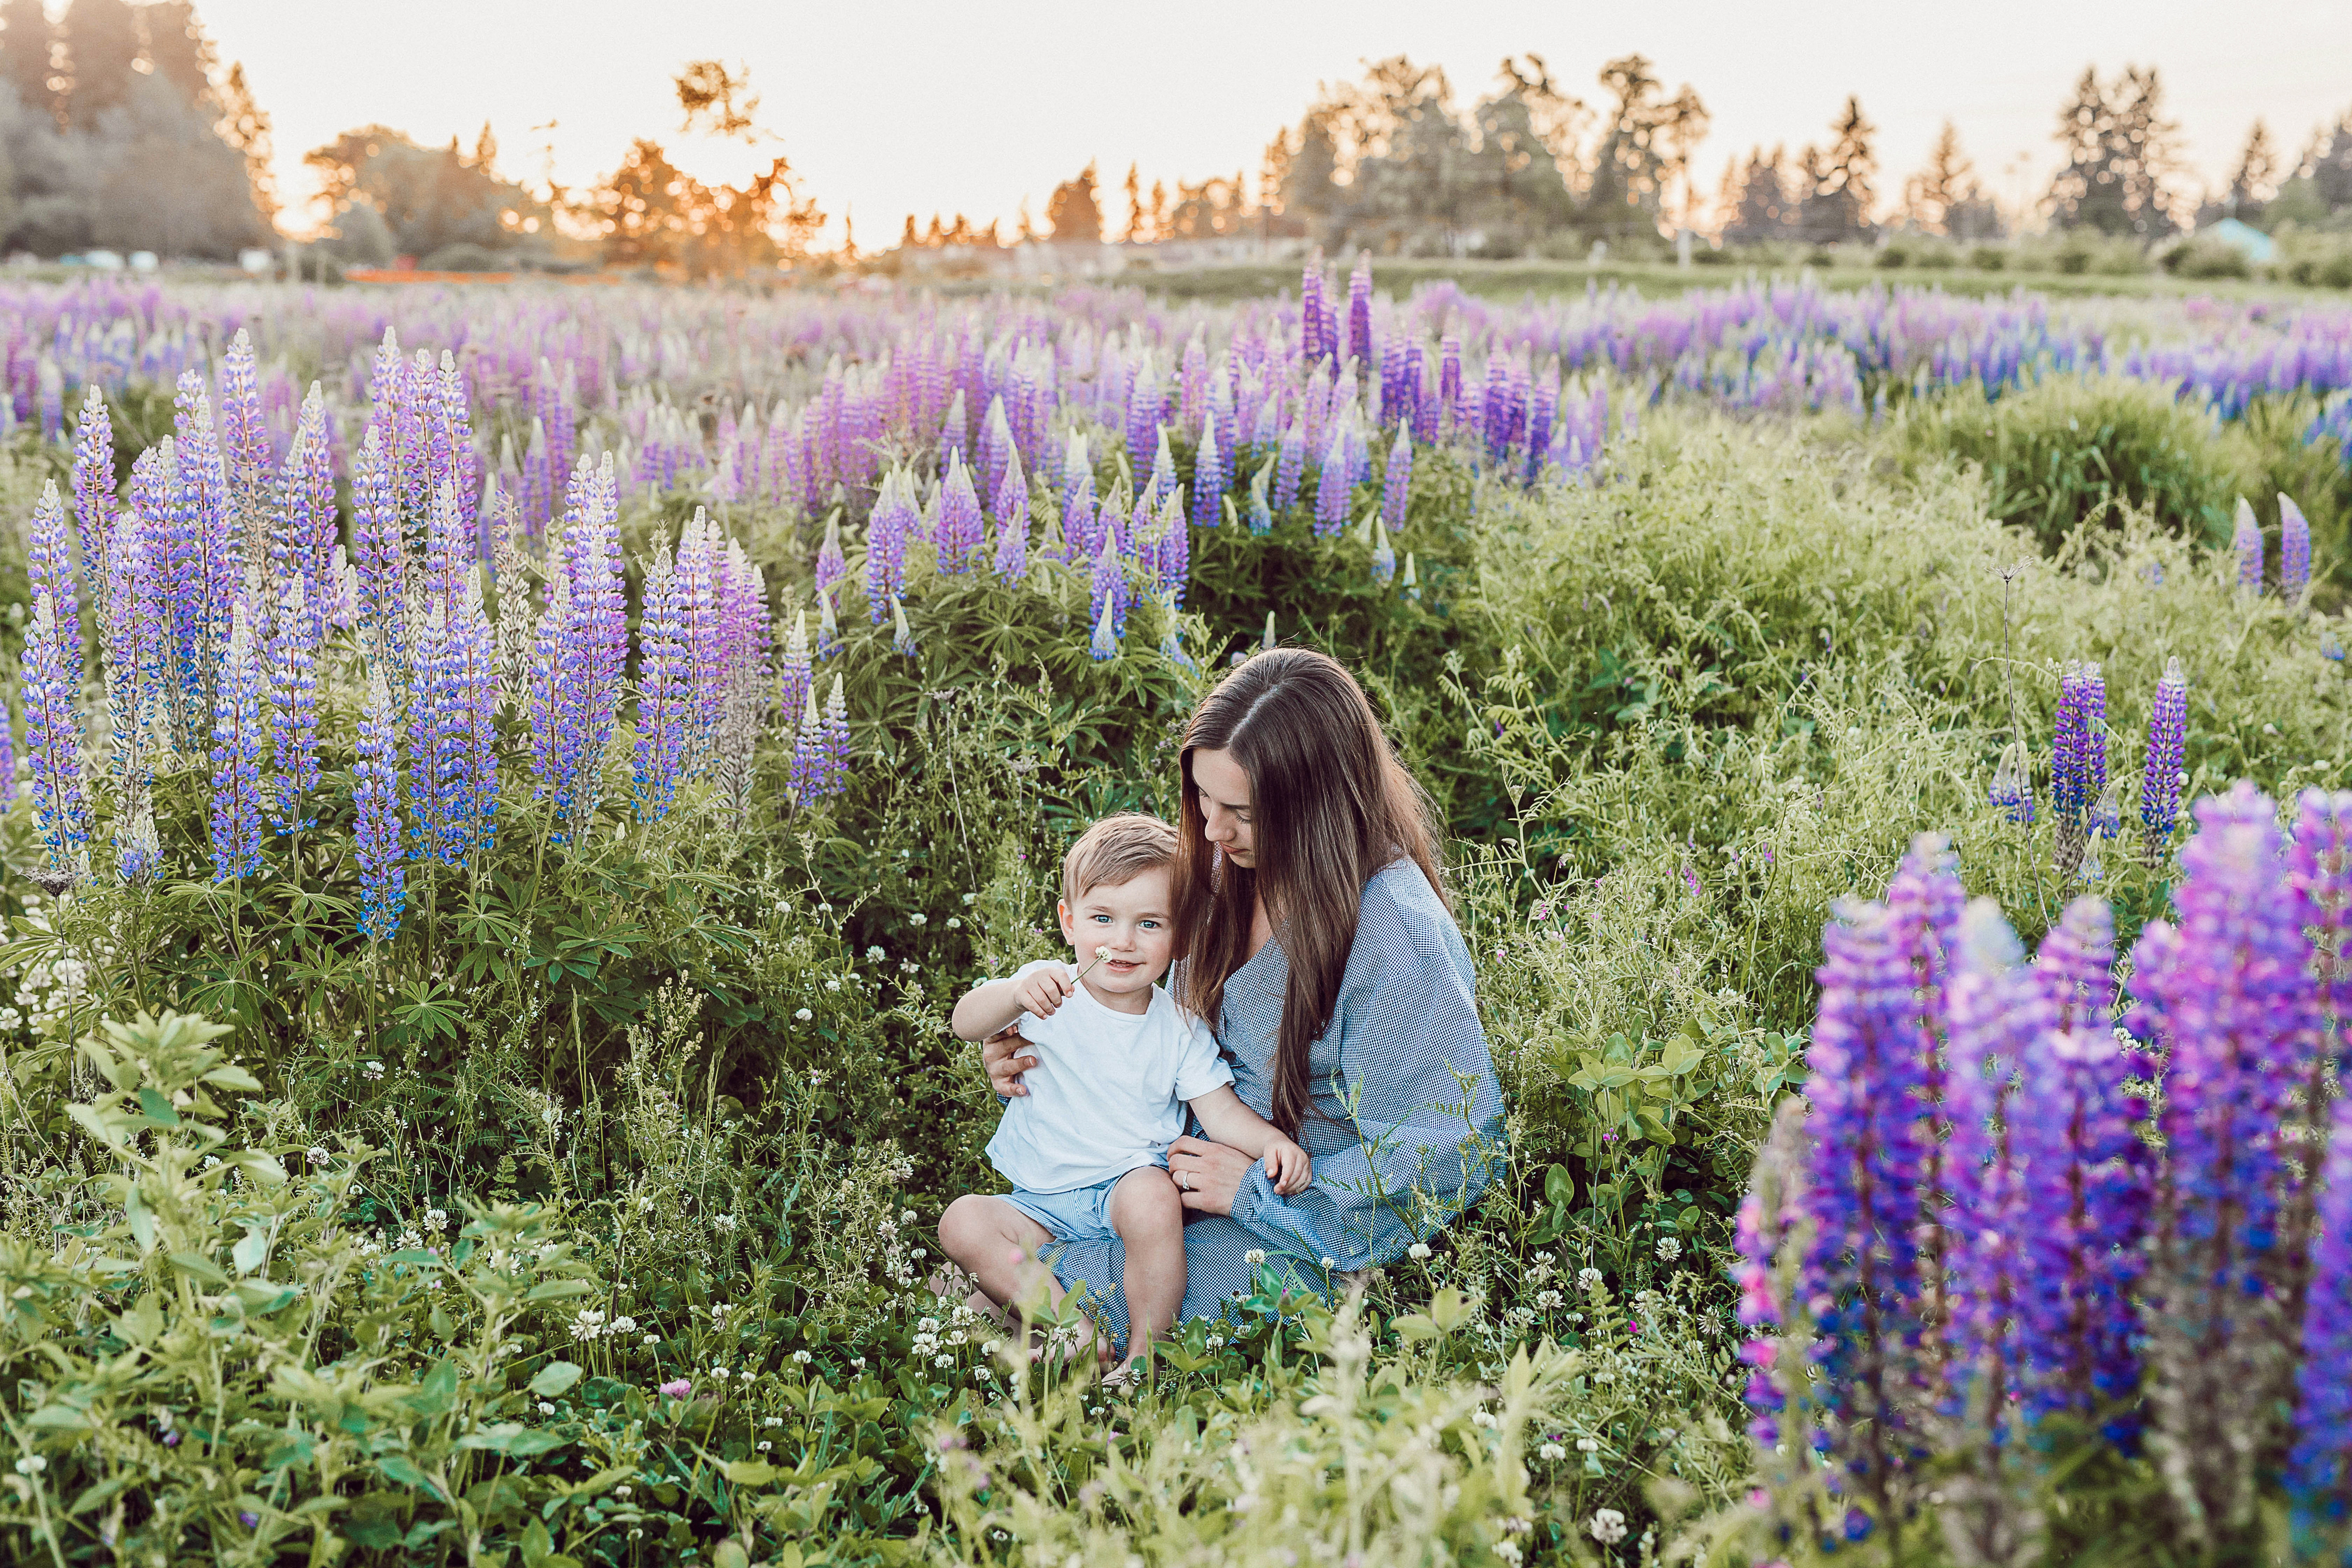 Cognitive behavior therapy mother and child in field with purple flowers